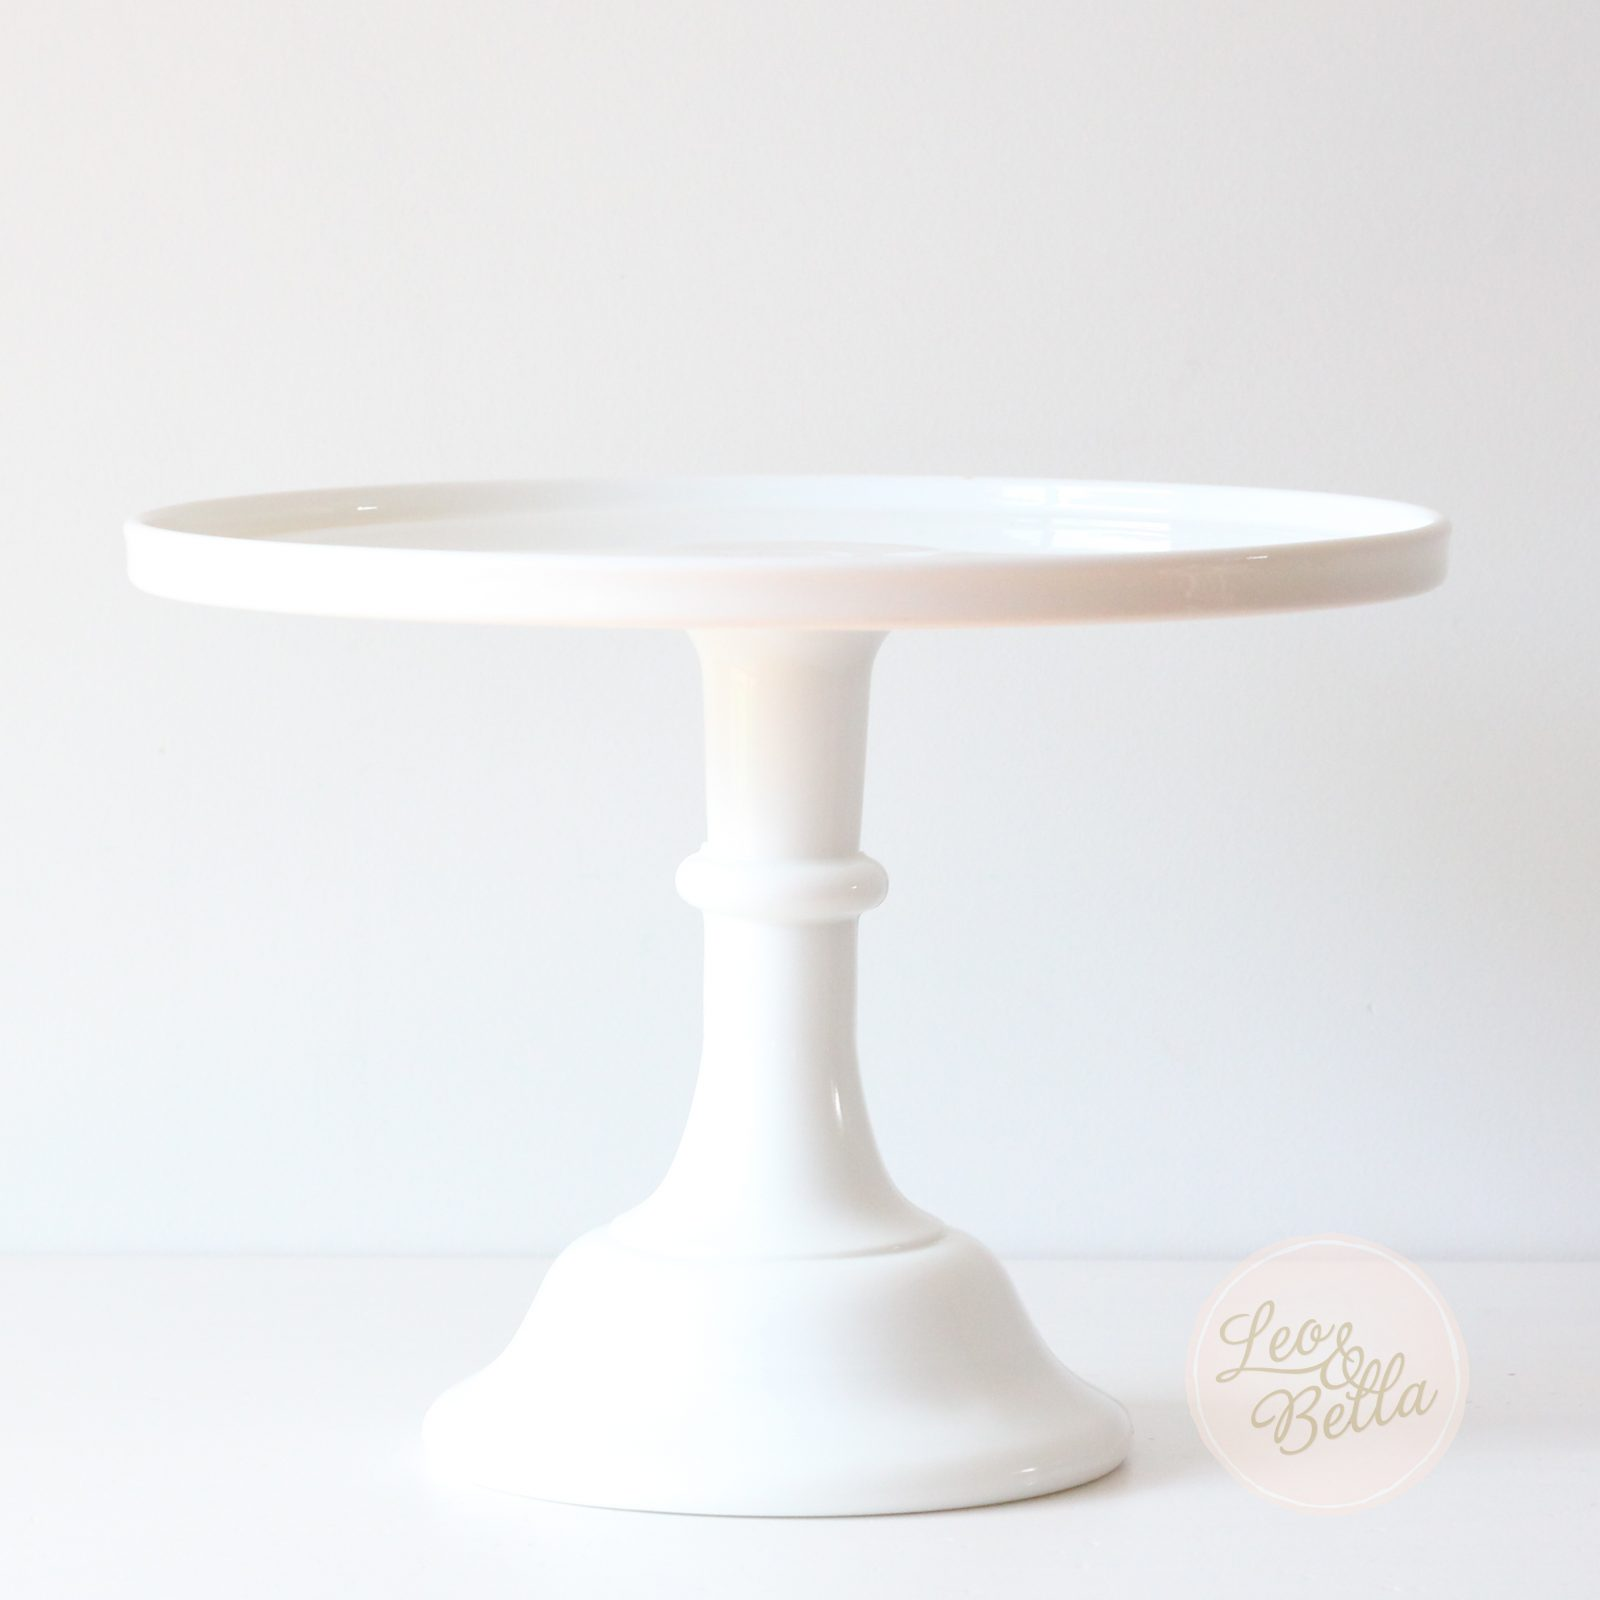 White Cake Plate Pedestal. White Pedestal Cake Plate Stand